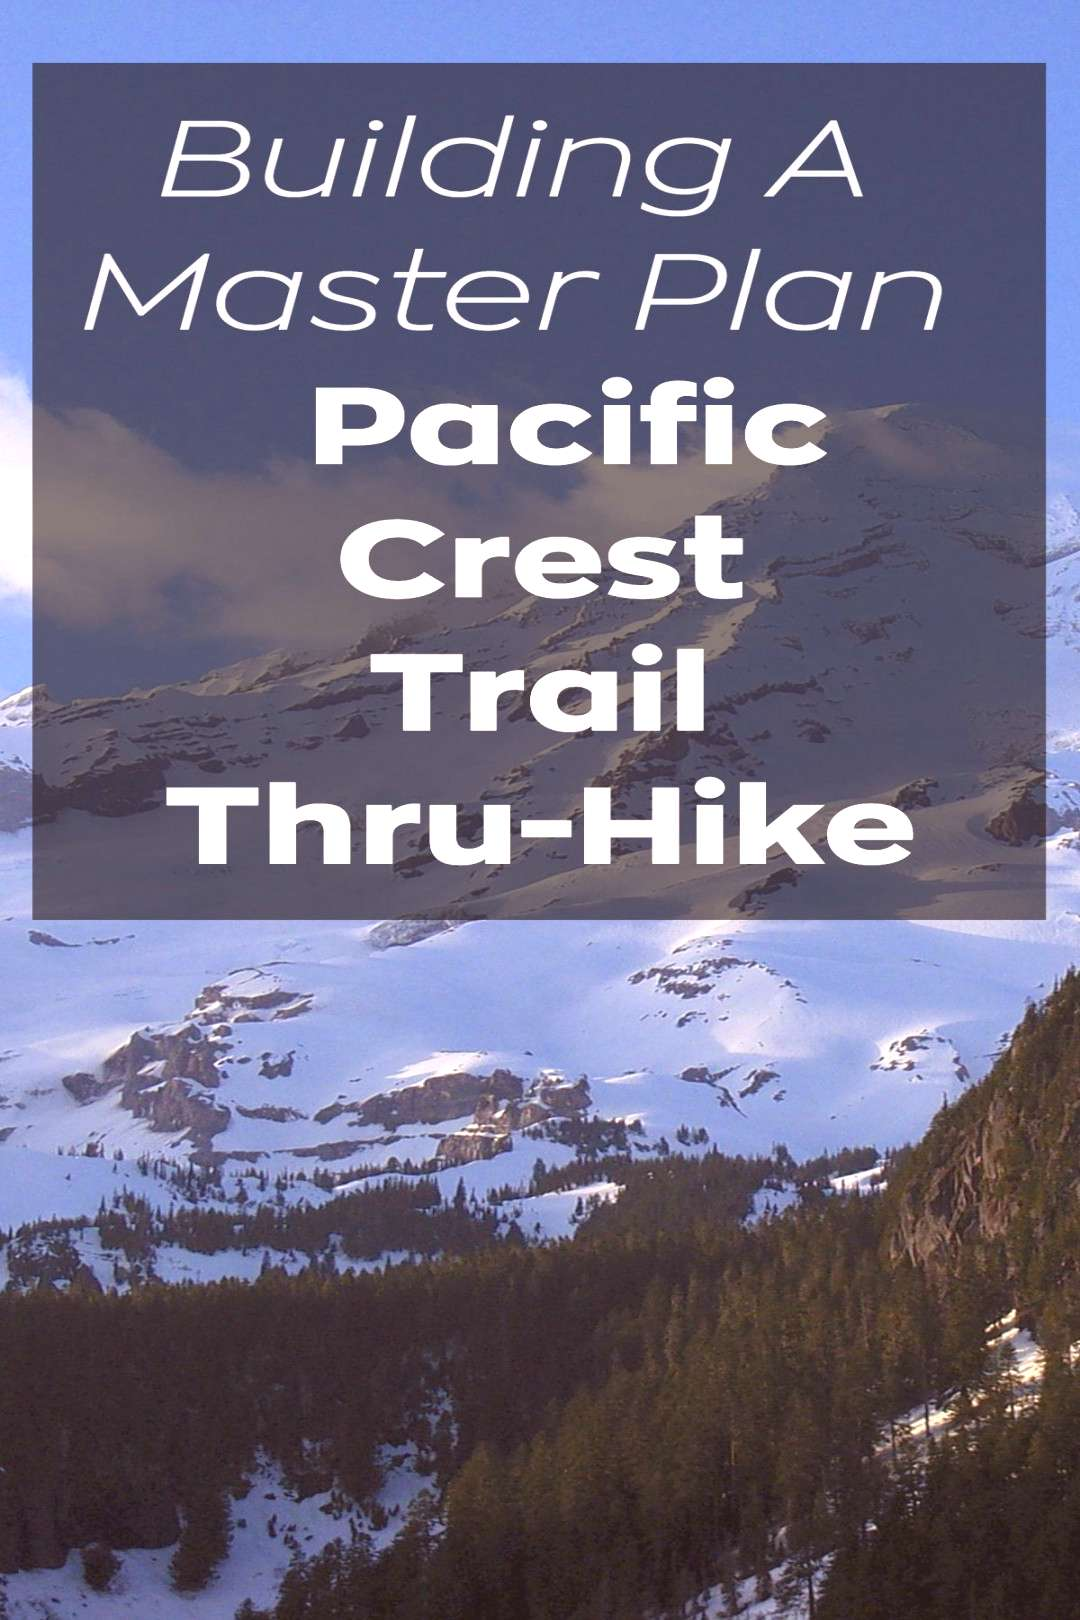 Build A Master Plan Of Your Pacific Crest Trail Thru-Hike The Pacific Crest Trail or PCT, is locate